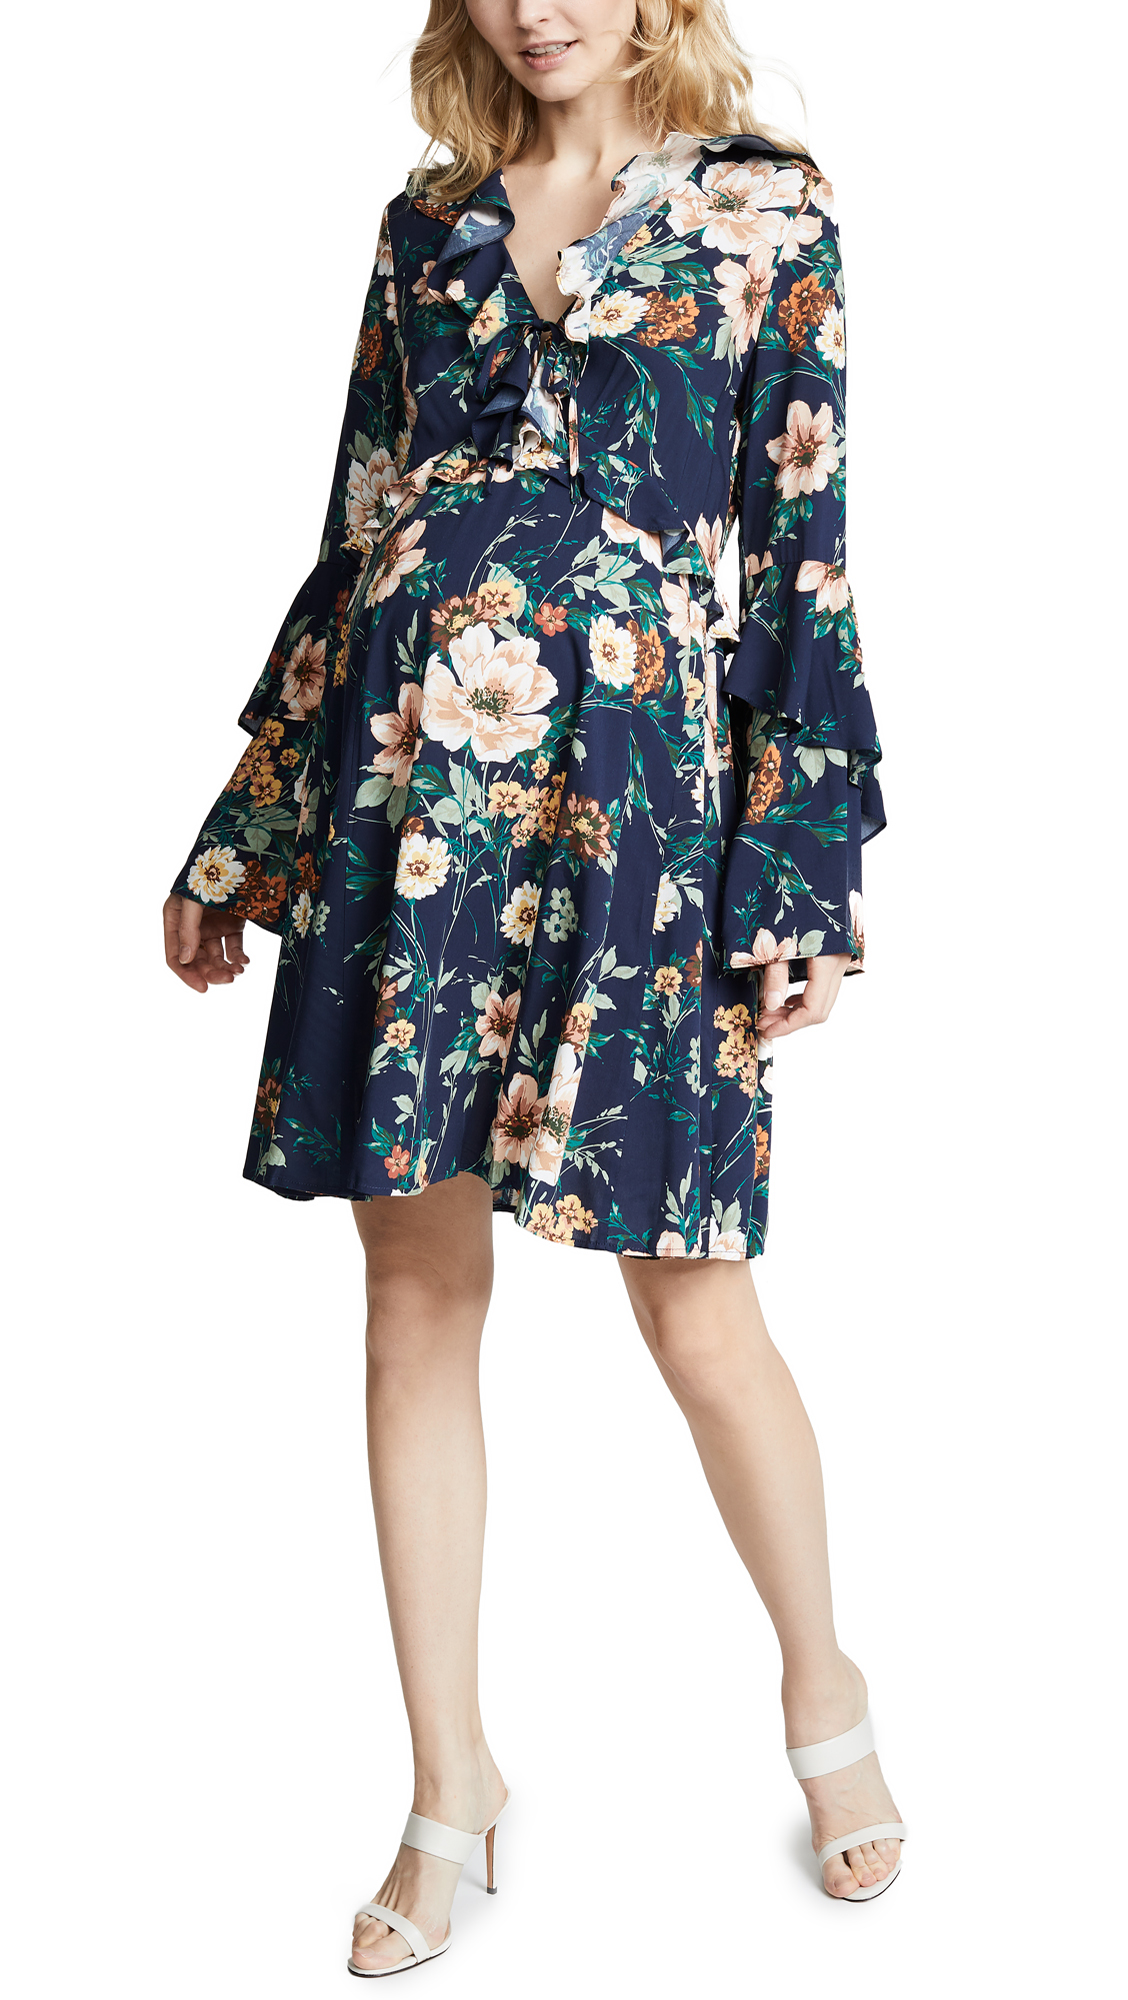 YUMI KIM Maternity Sophia Dress in Flower Patch Navy